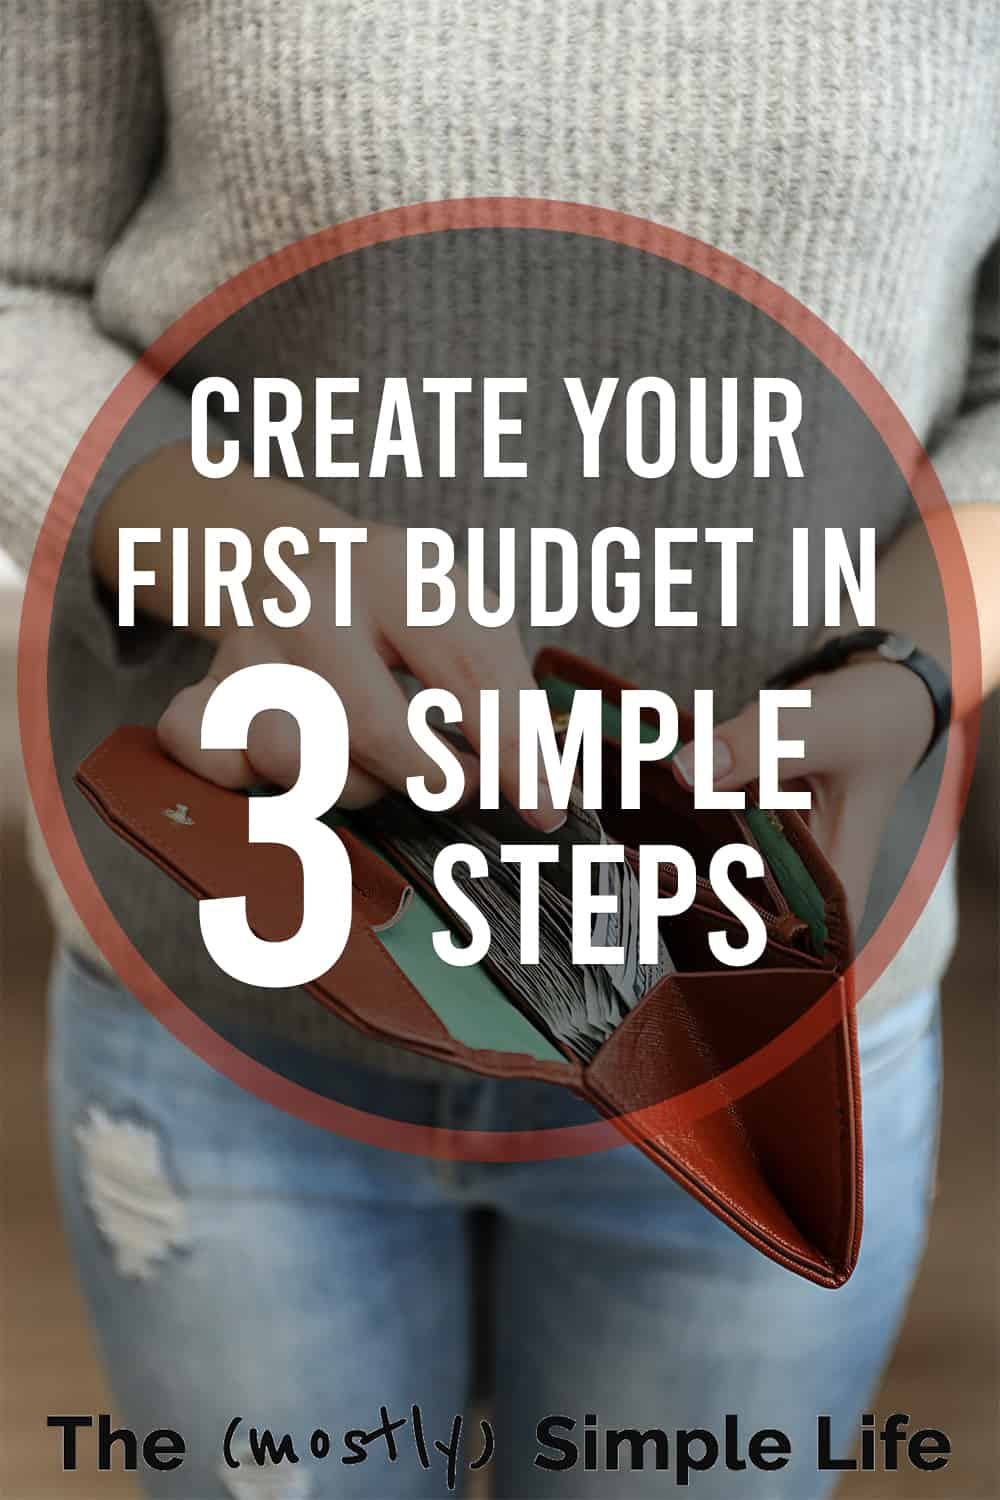 How to make your budget: 3 simple steps